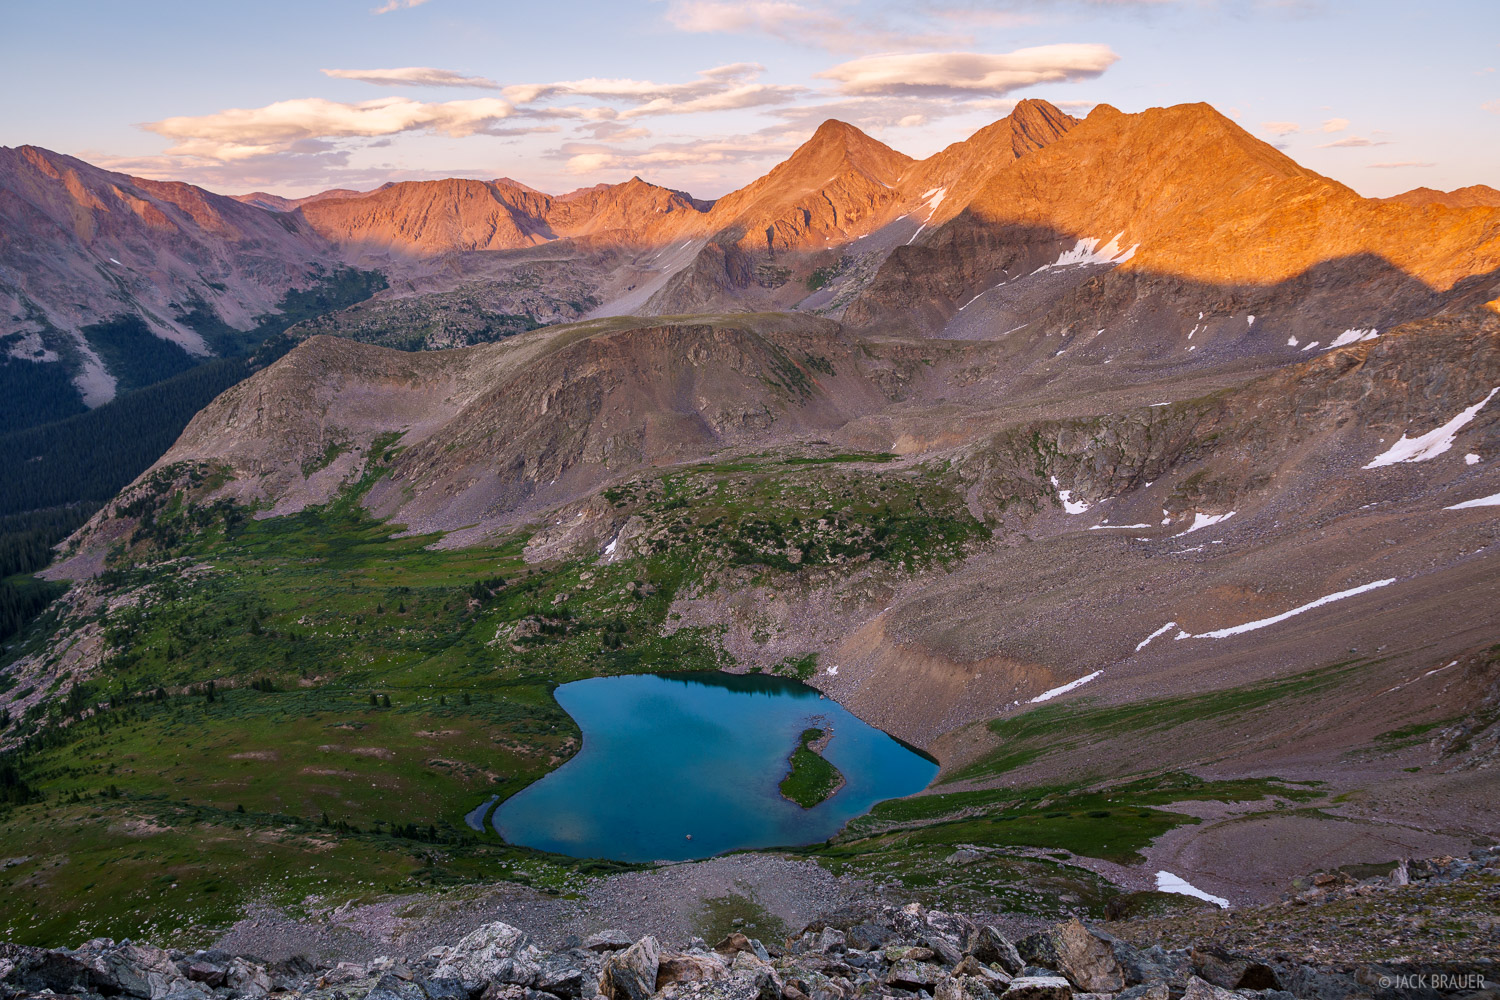 Collegiate Peaks Wilderness, Colorado, Ice Mountain, Lake Ann, Sawatch Range, The Three Apostles, photo